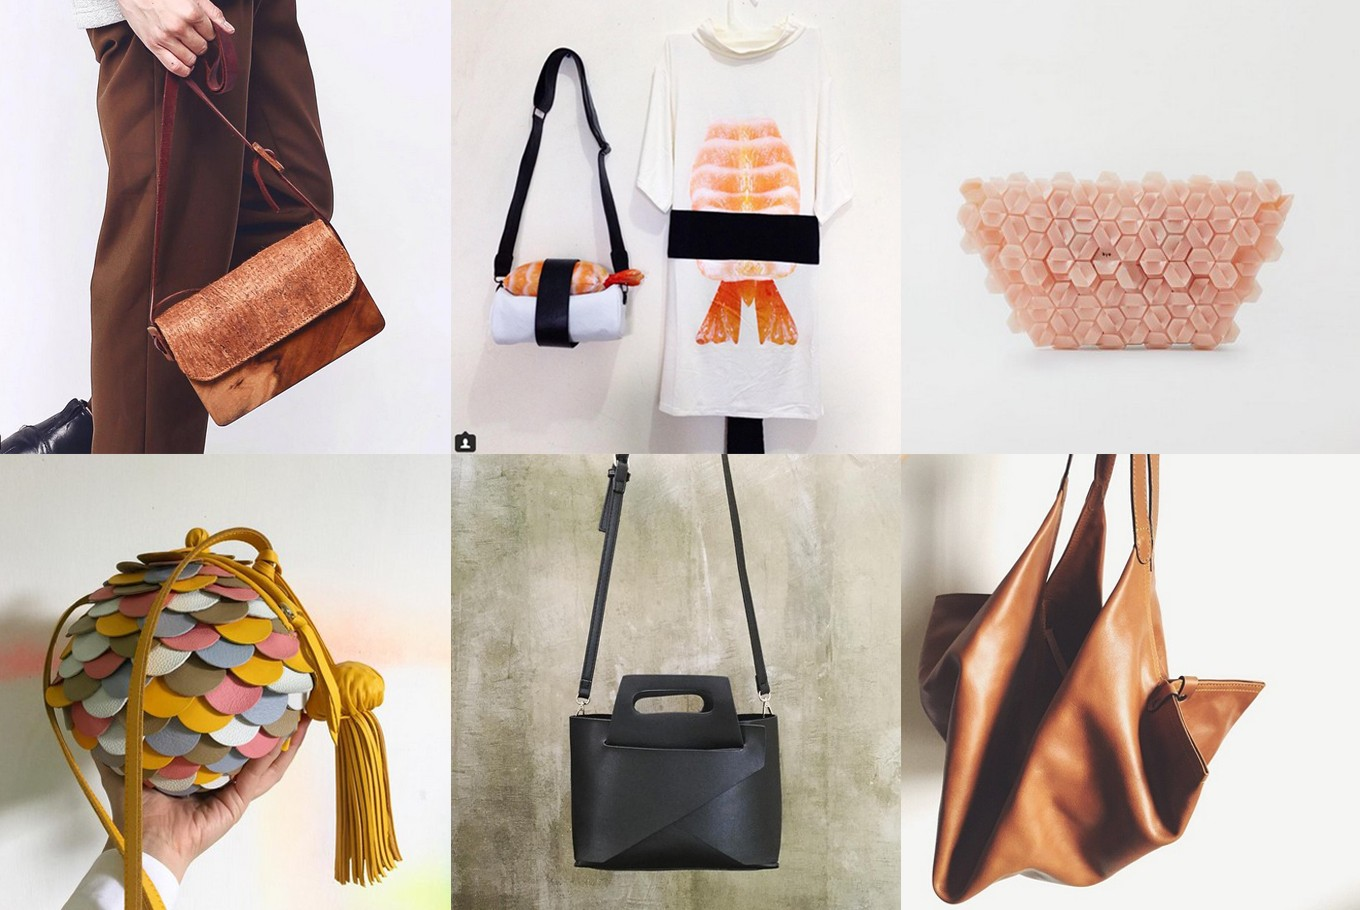 2b2902de5b7a 6 local quirky bag brands on the rise. Asmara Wreksono. Asmara Wreksono. The  Jakarta Post